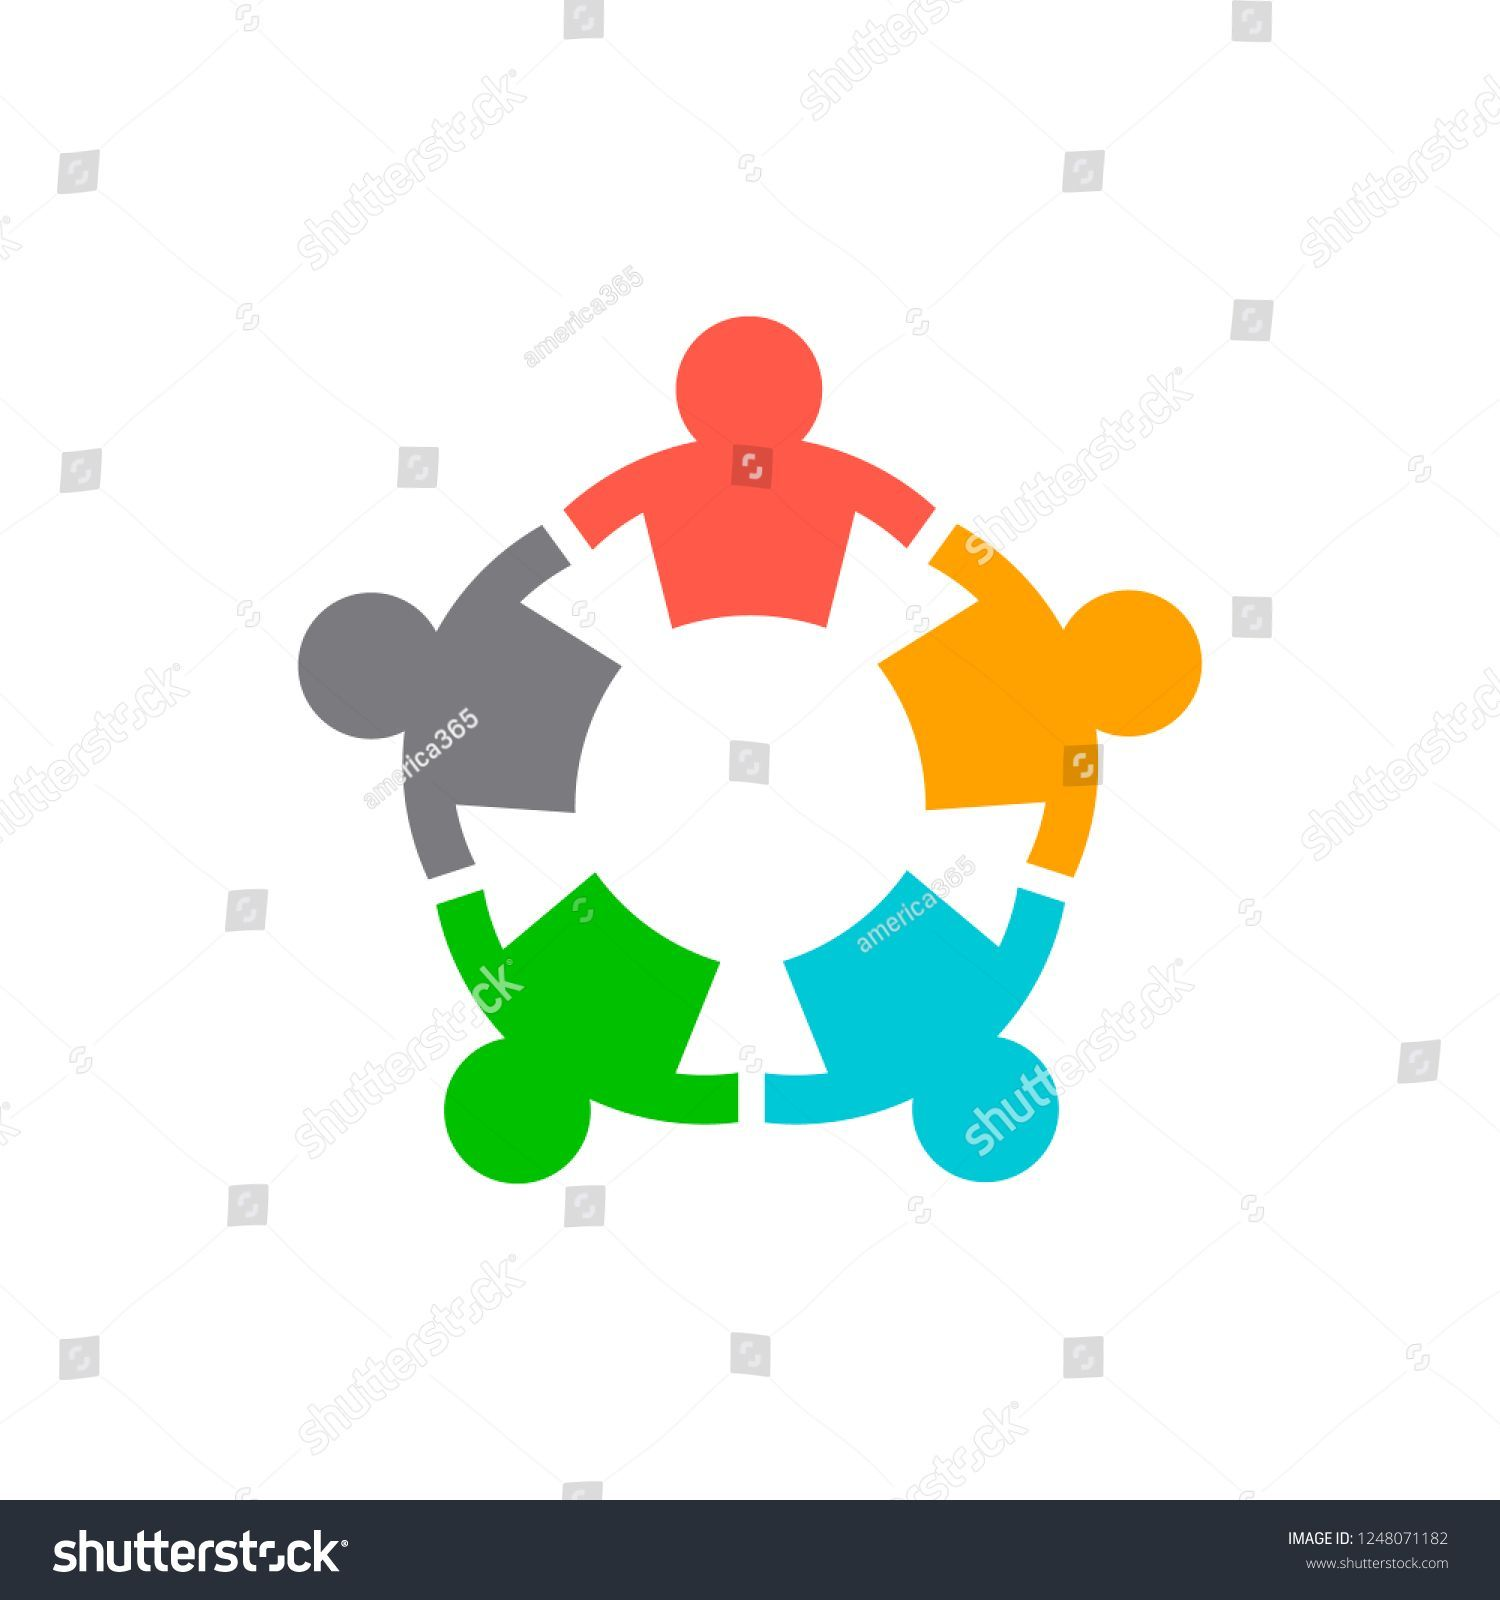 Teamwork clipart consultancy. Business consultants conference vector